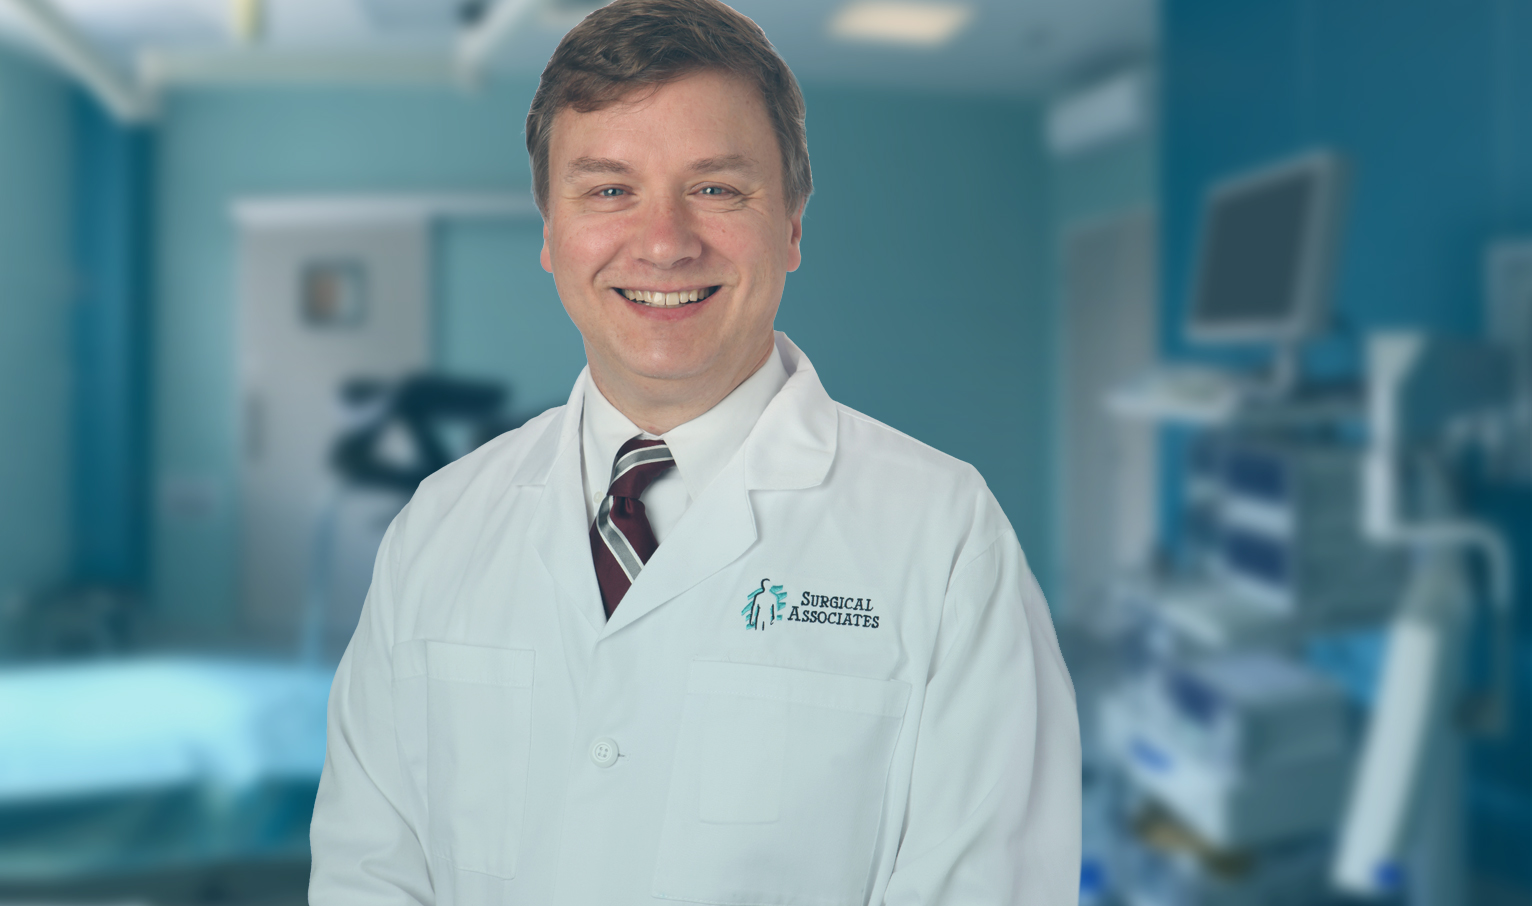 Timothy R. Rasmusson, MD, FACS